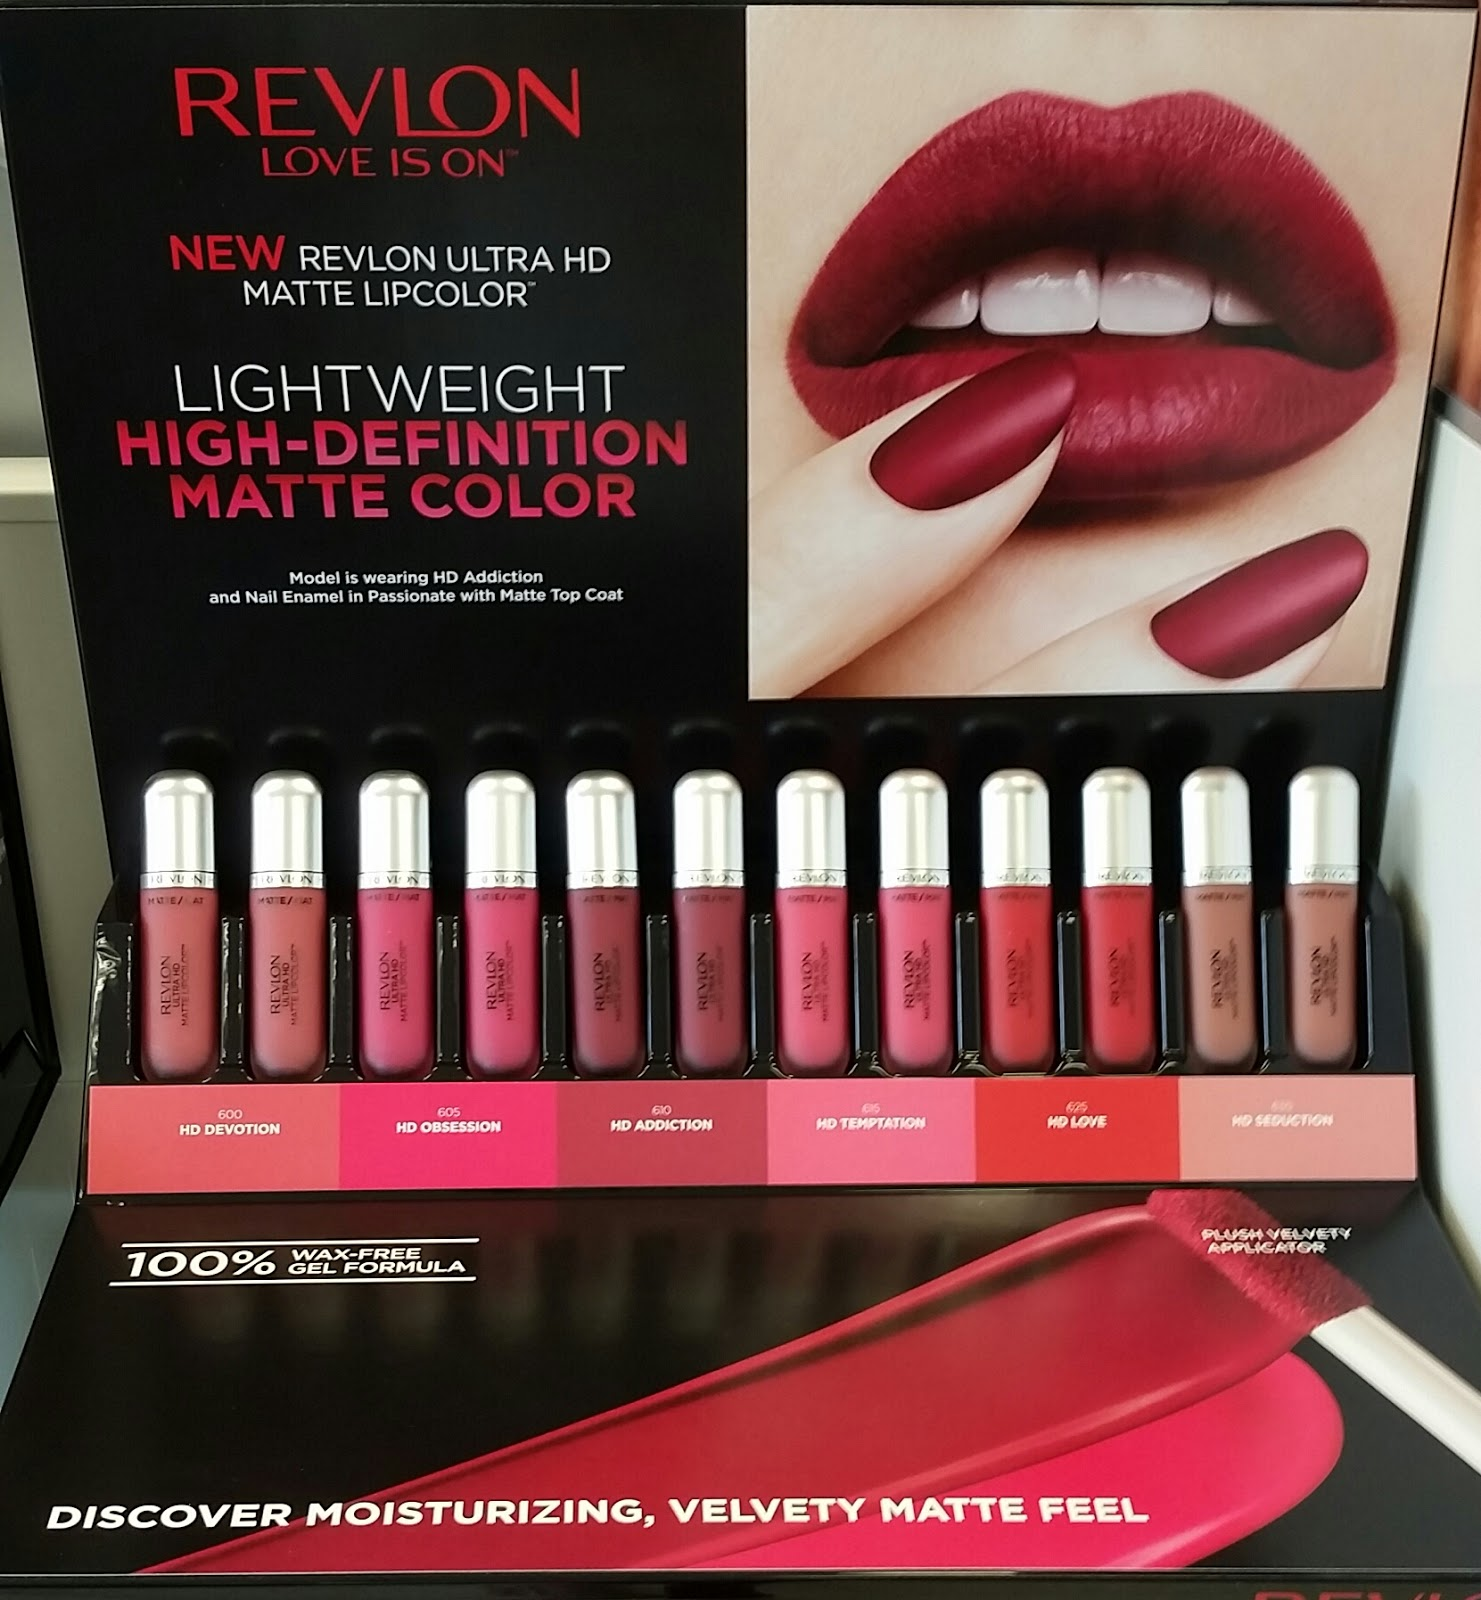 Revlon Ultra HD Matte Liquid Lipcolor Review & Swatches